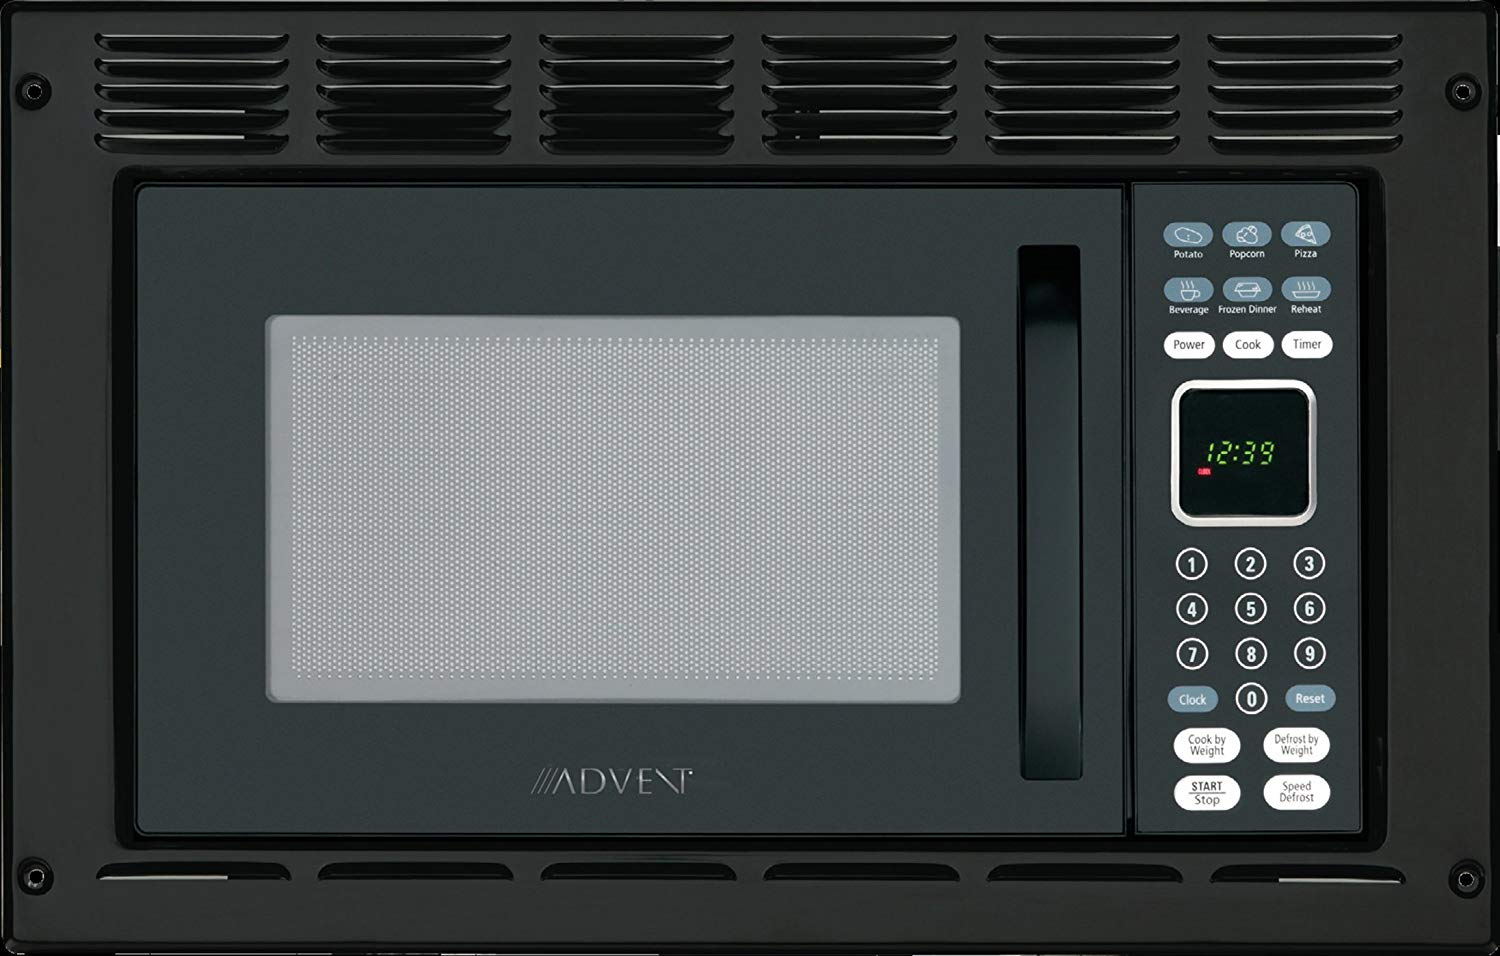 Advent MW912BK Black Built-in Microwave Oven with Trim Kit specially built for RV Recreational Vehicle, Trailer, Camper, Motor Home, Boat etc., 0.9 cu.ft. capacity, 900 watts of cooking power and 10 adjustable power levels let you boil, reheat, defrost and more, 6 pre-programmed one-touch digital